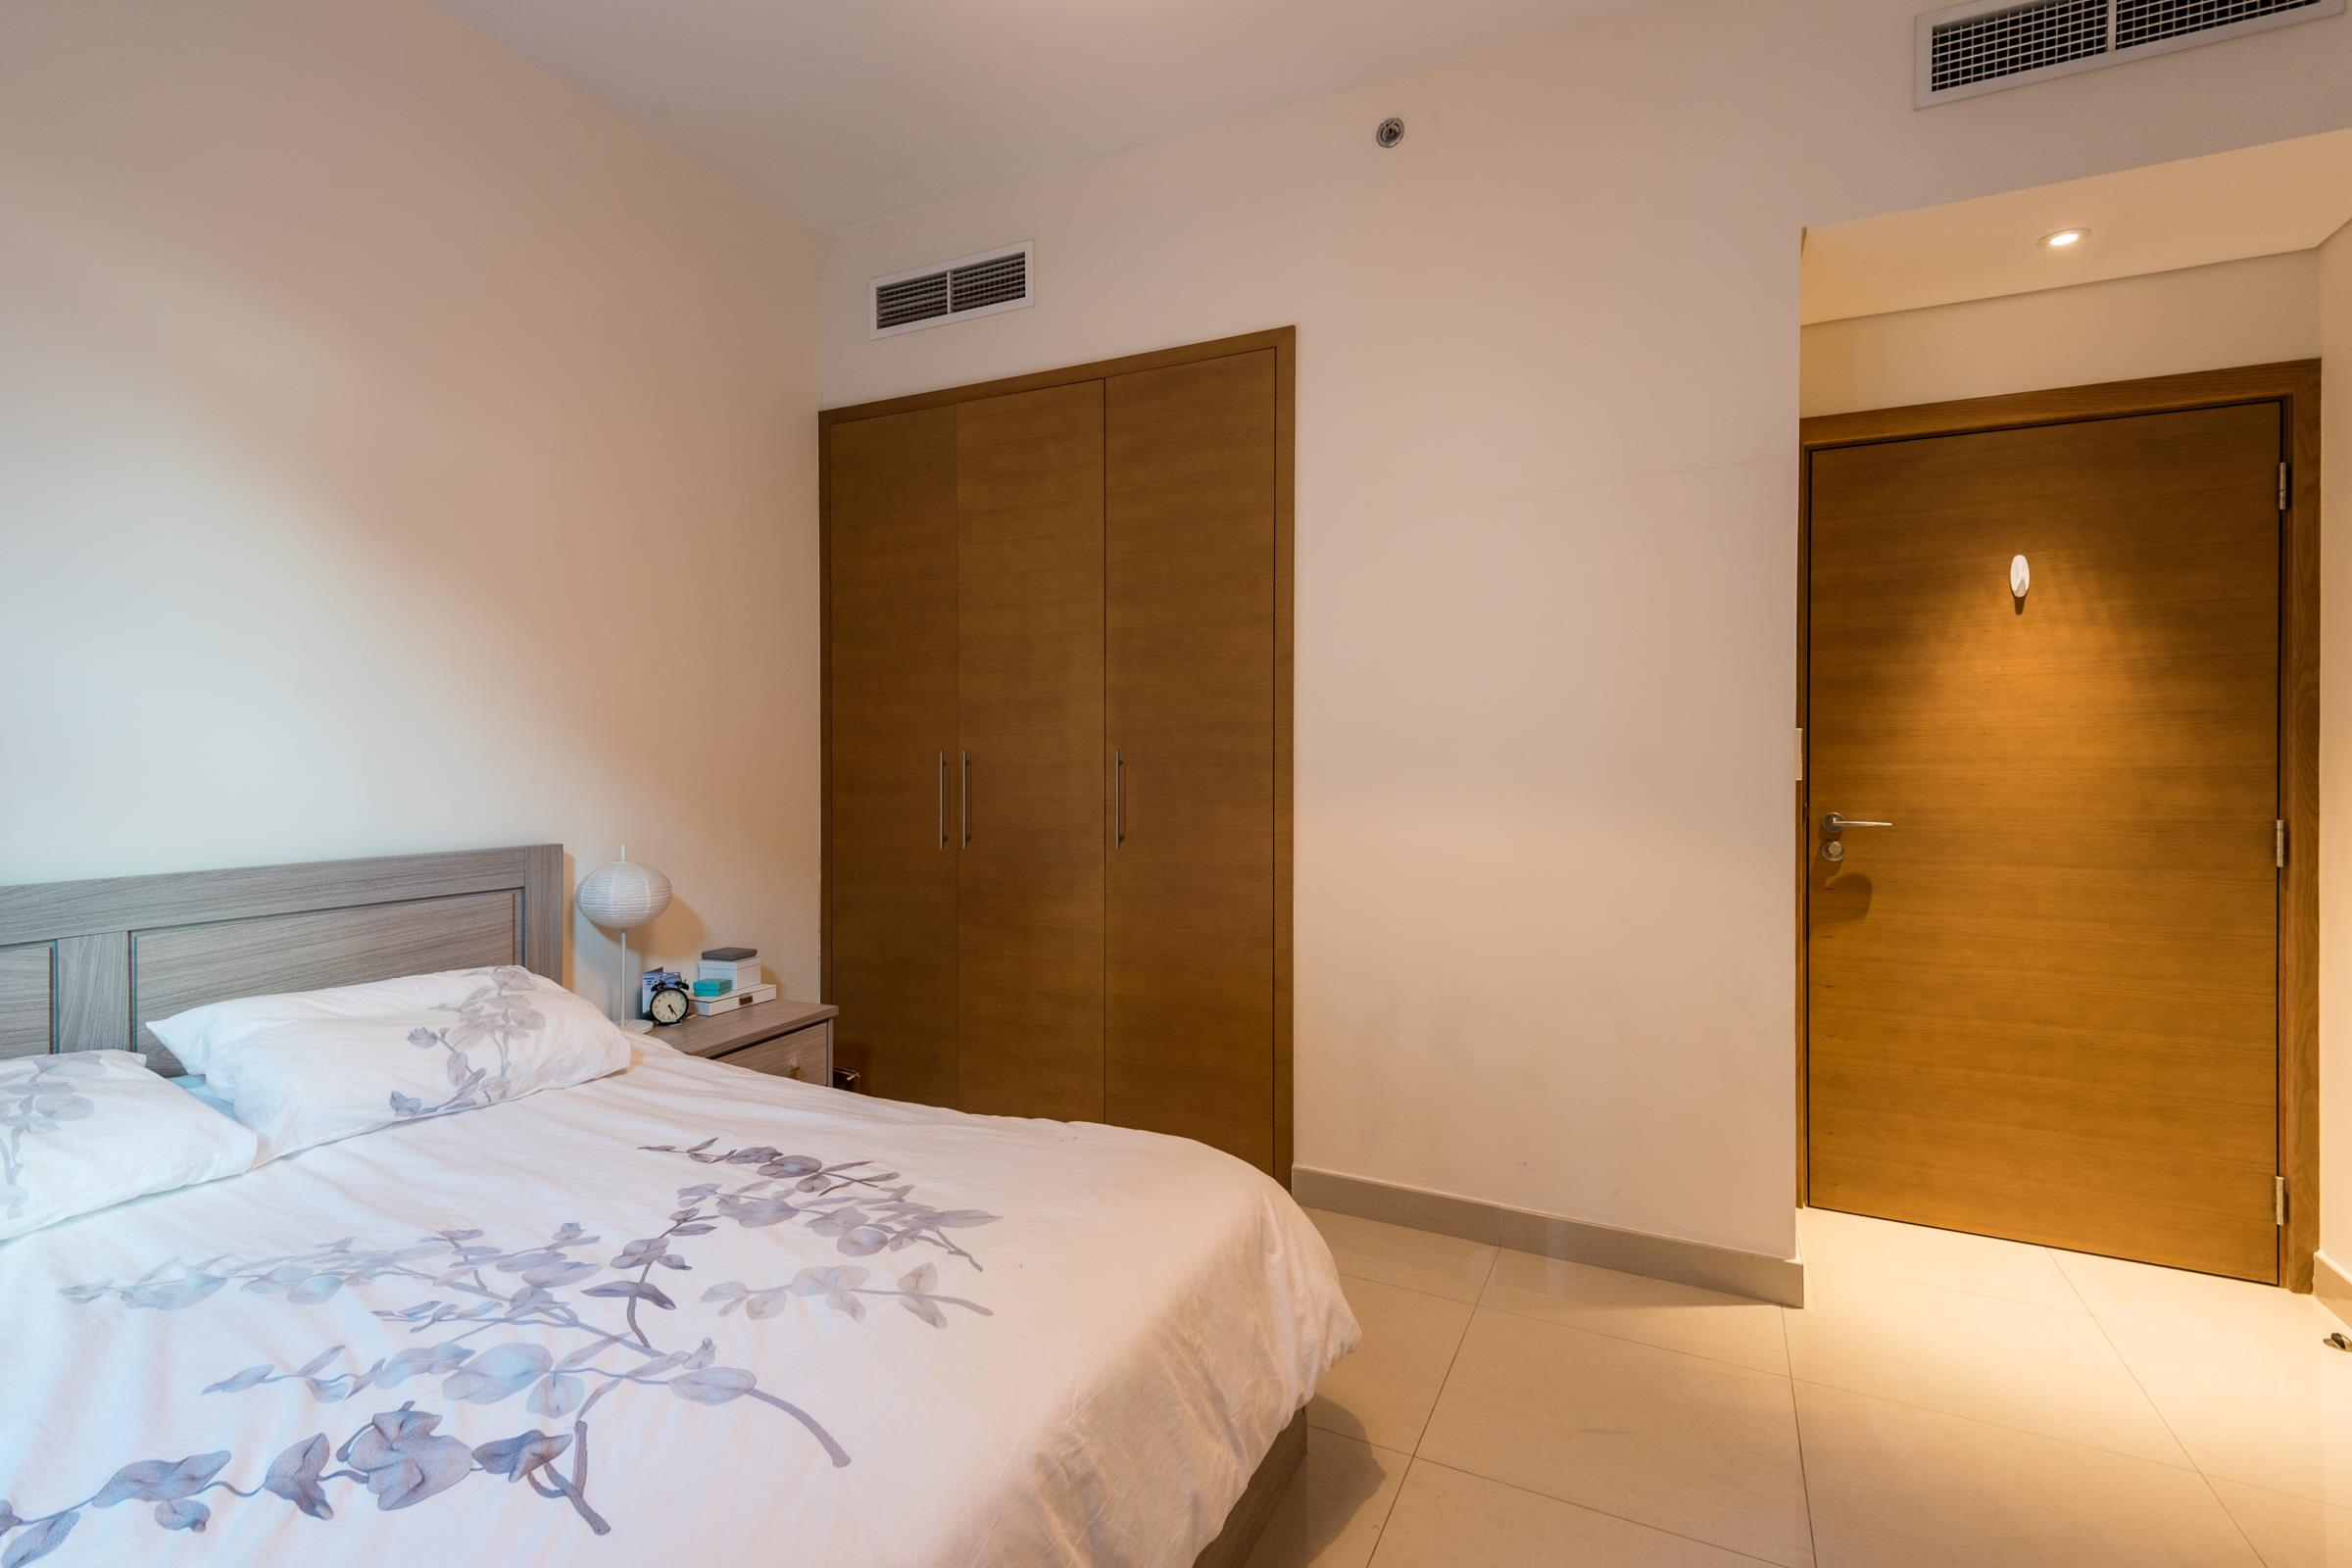 One Bed Room Plus Study - Motivated Seller - High ROI